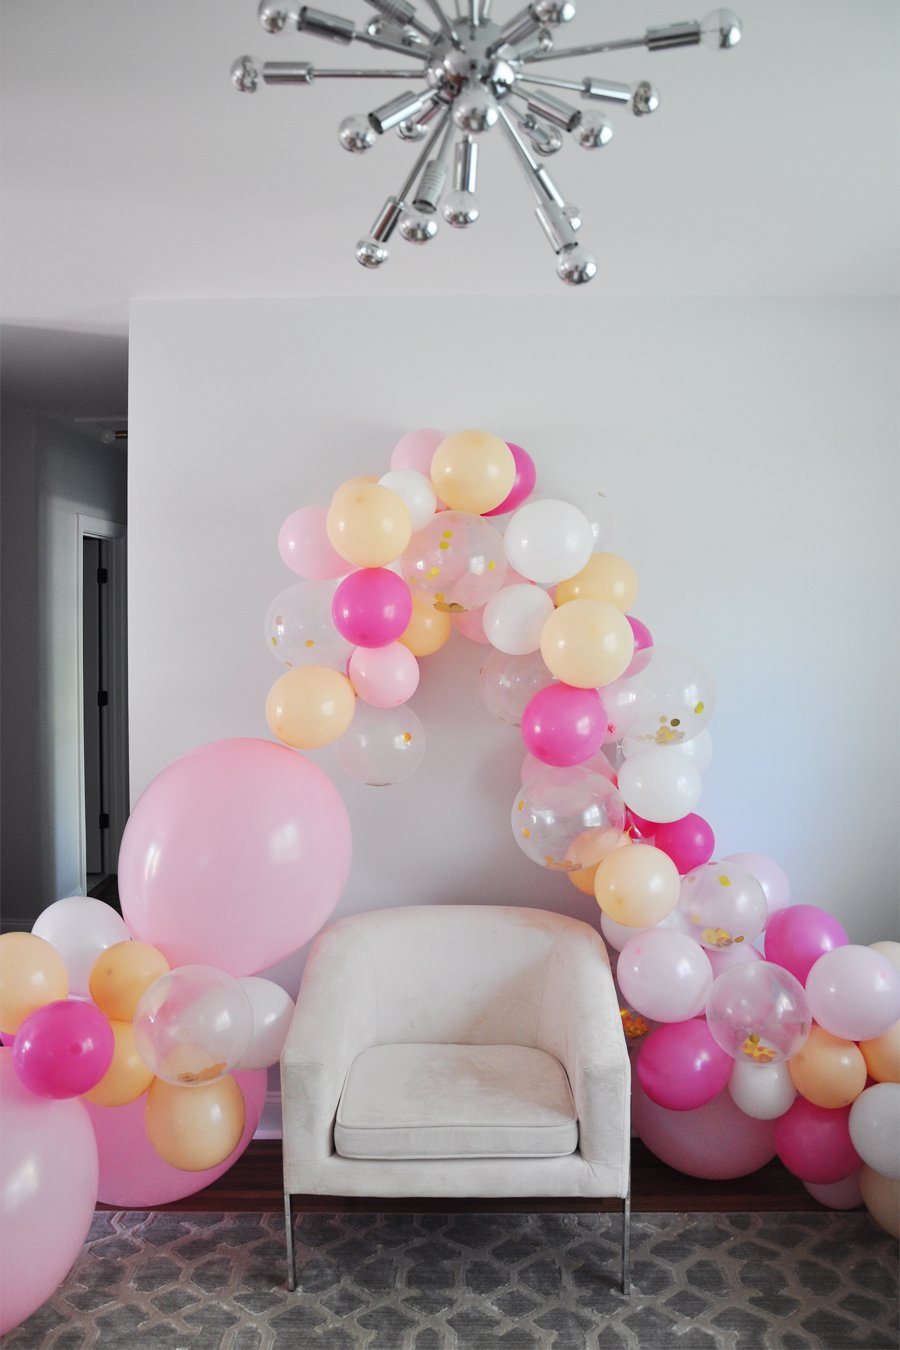 DIY Balloon Garland + The Easiest Birthday Party Decor Ideas